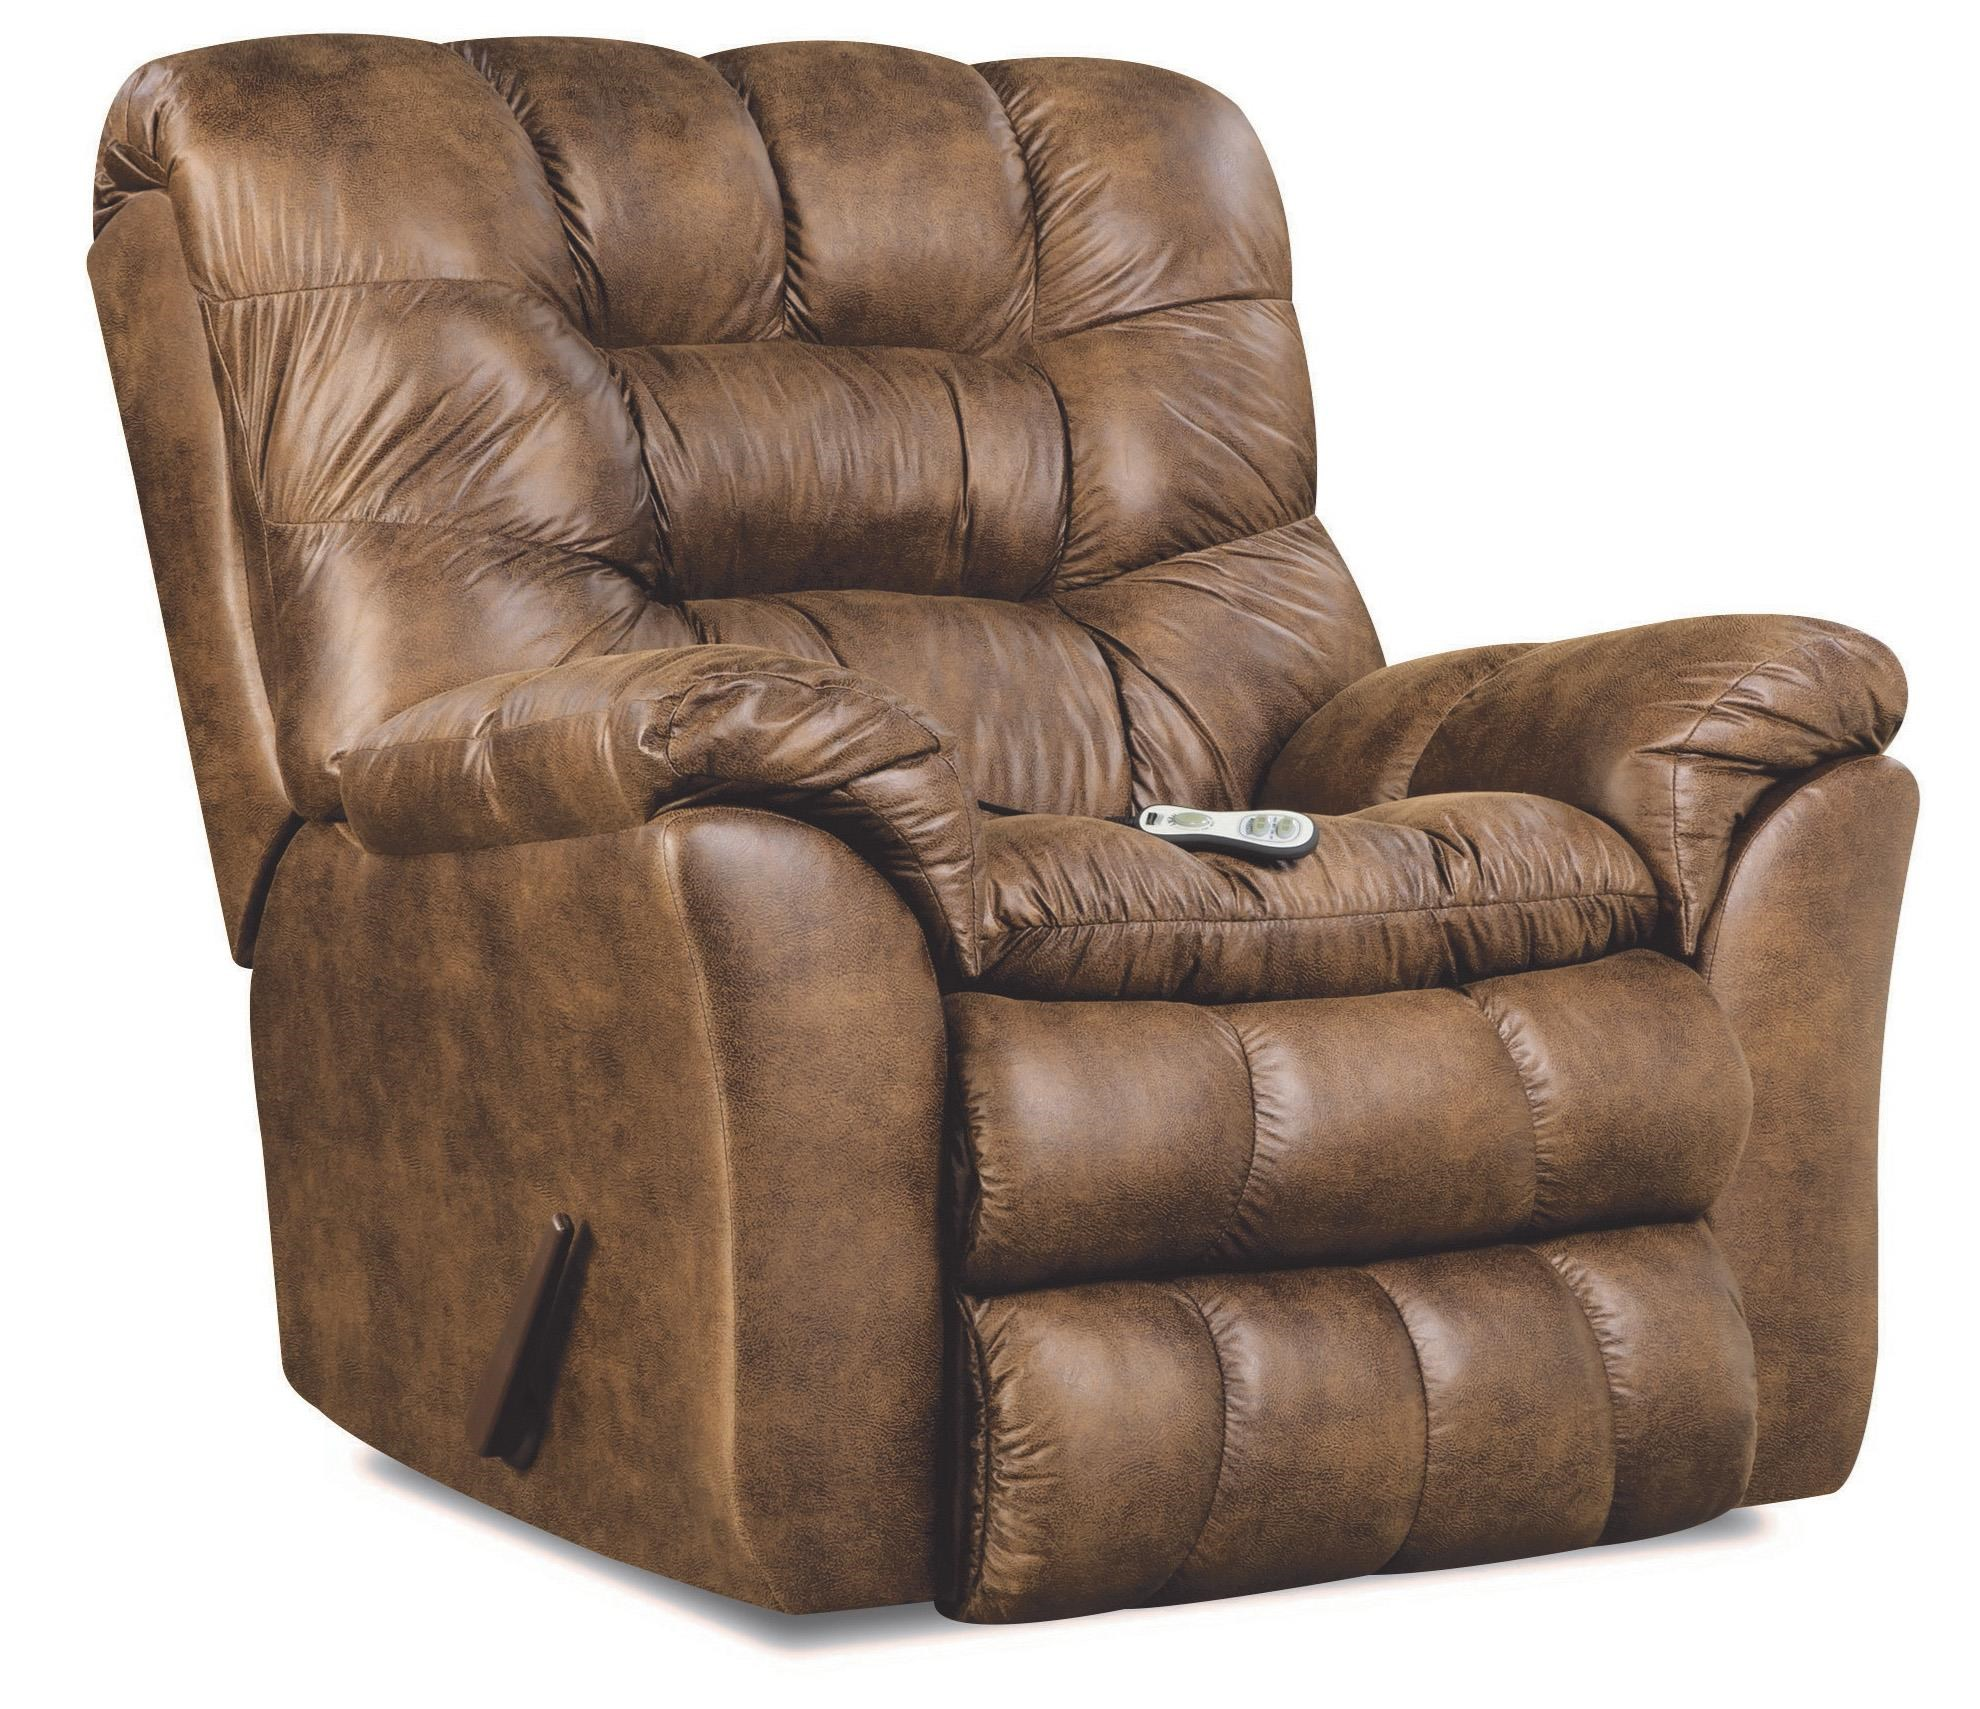 Simmons Upholstery 678 Heat and Massage Rocker Recliner - Item Number: 678M